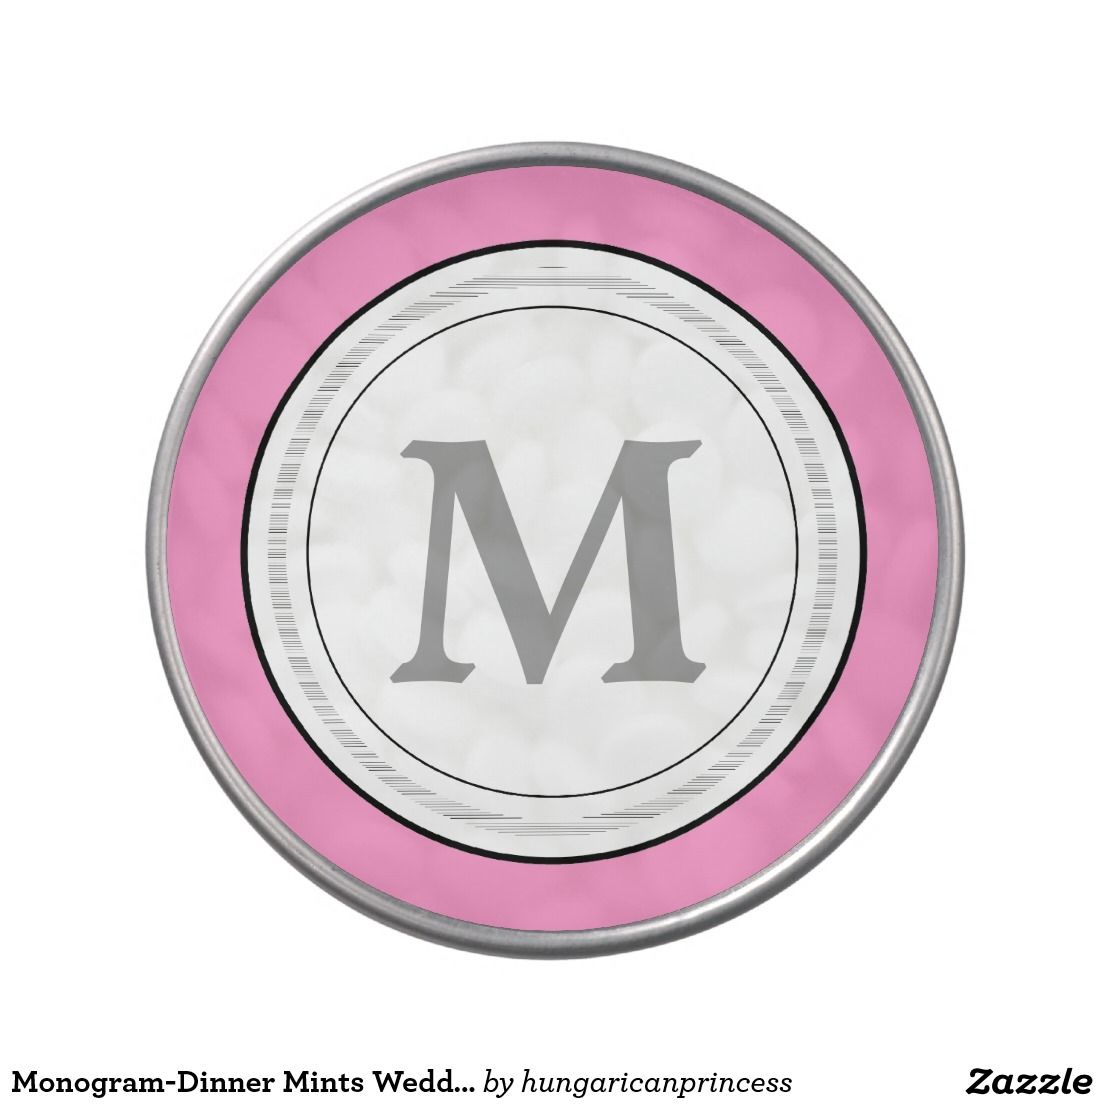 Monogram-Dinner Mints Wedding Favor Jelly Belly Candy Tin